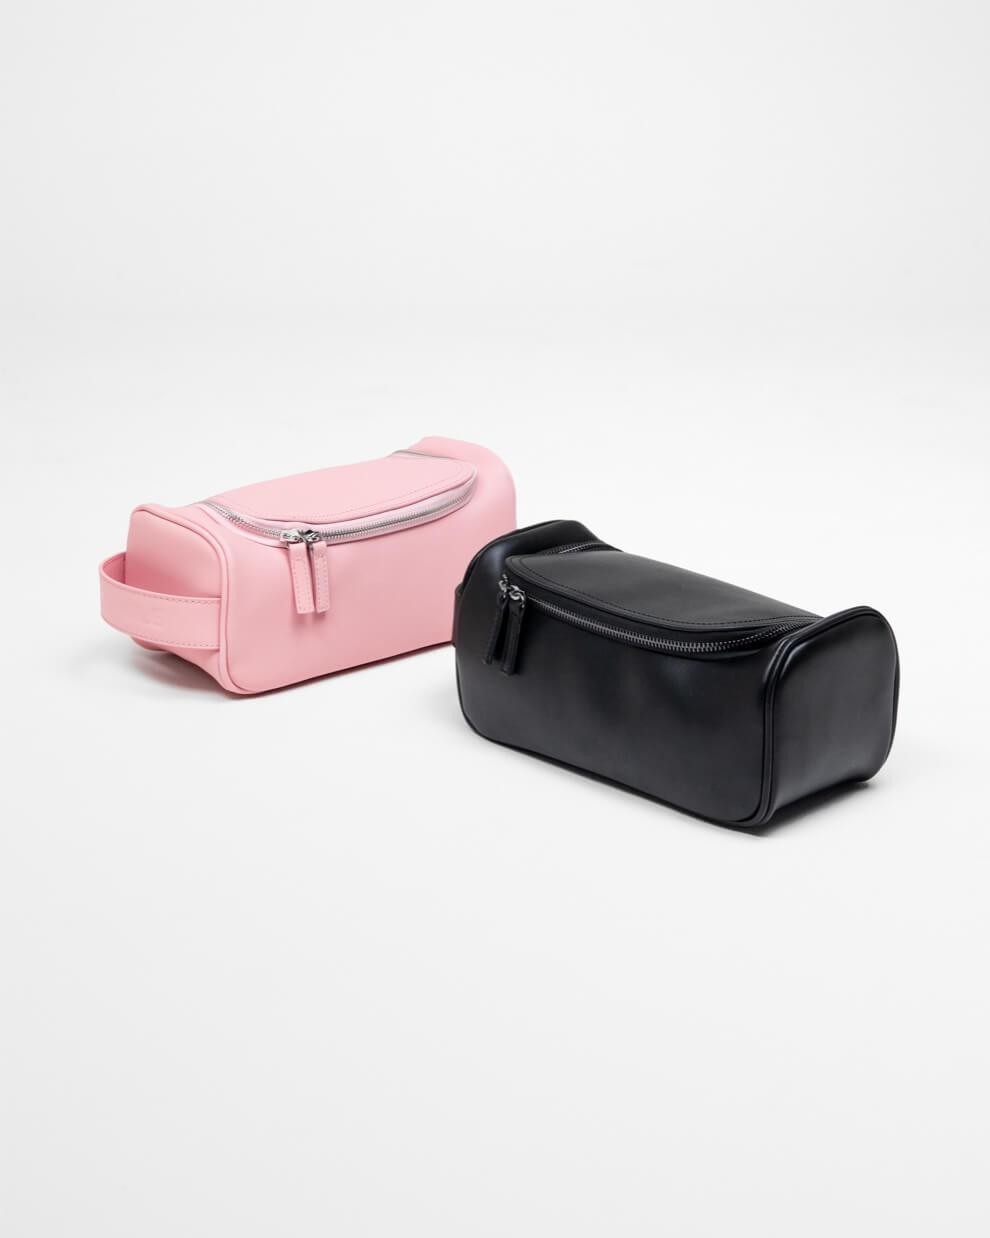 Shop the The HiSmile Toiletry Bag